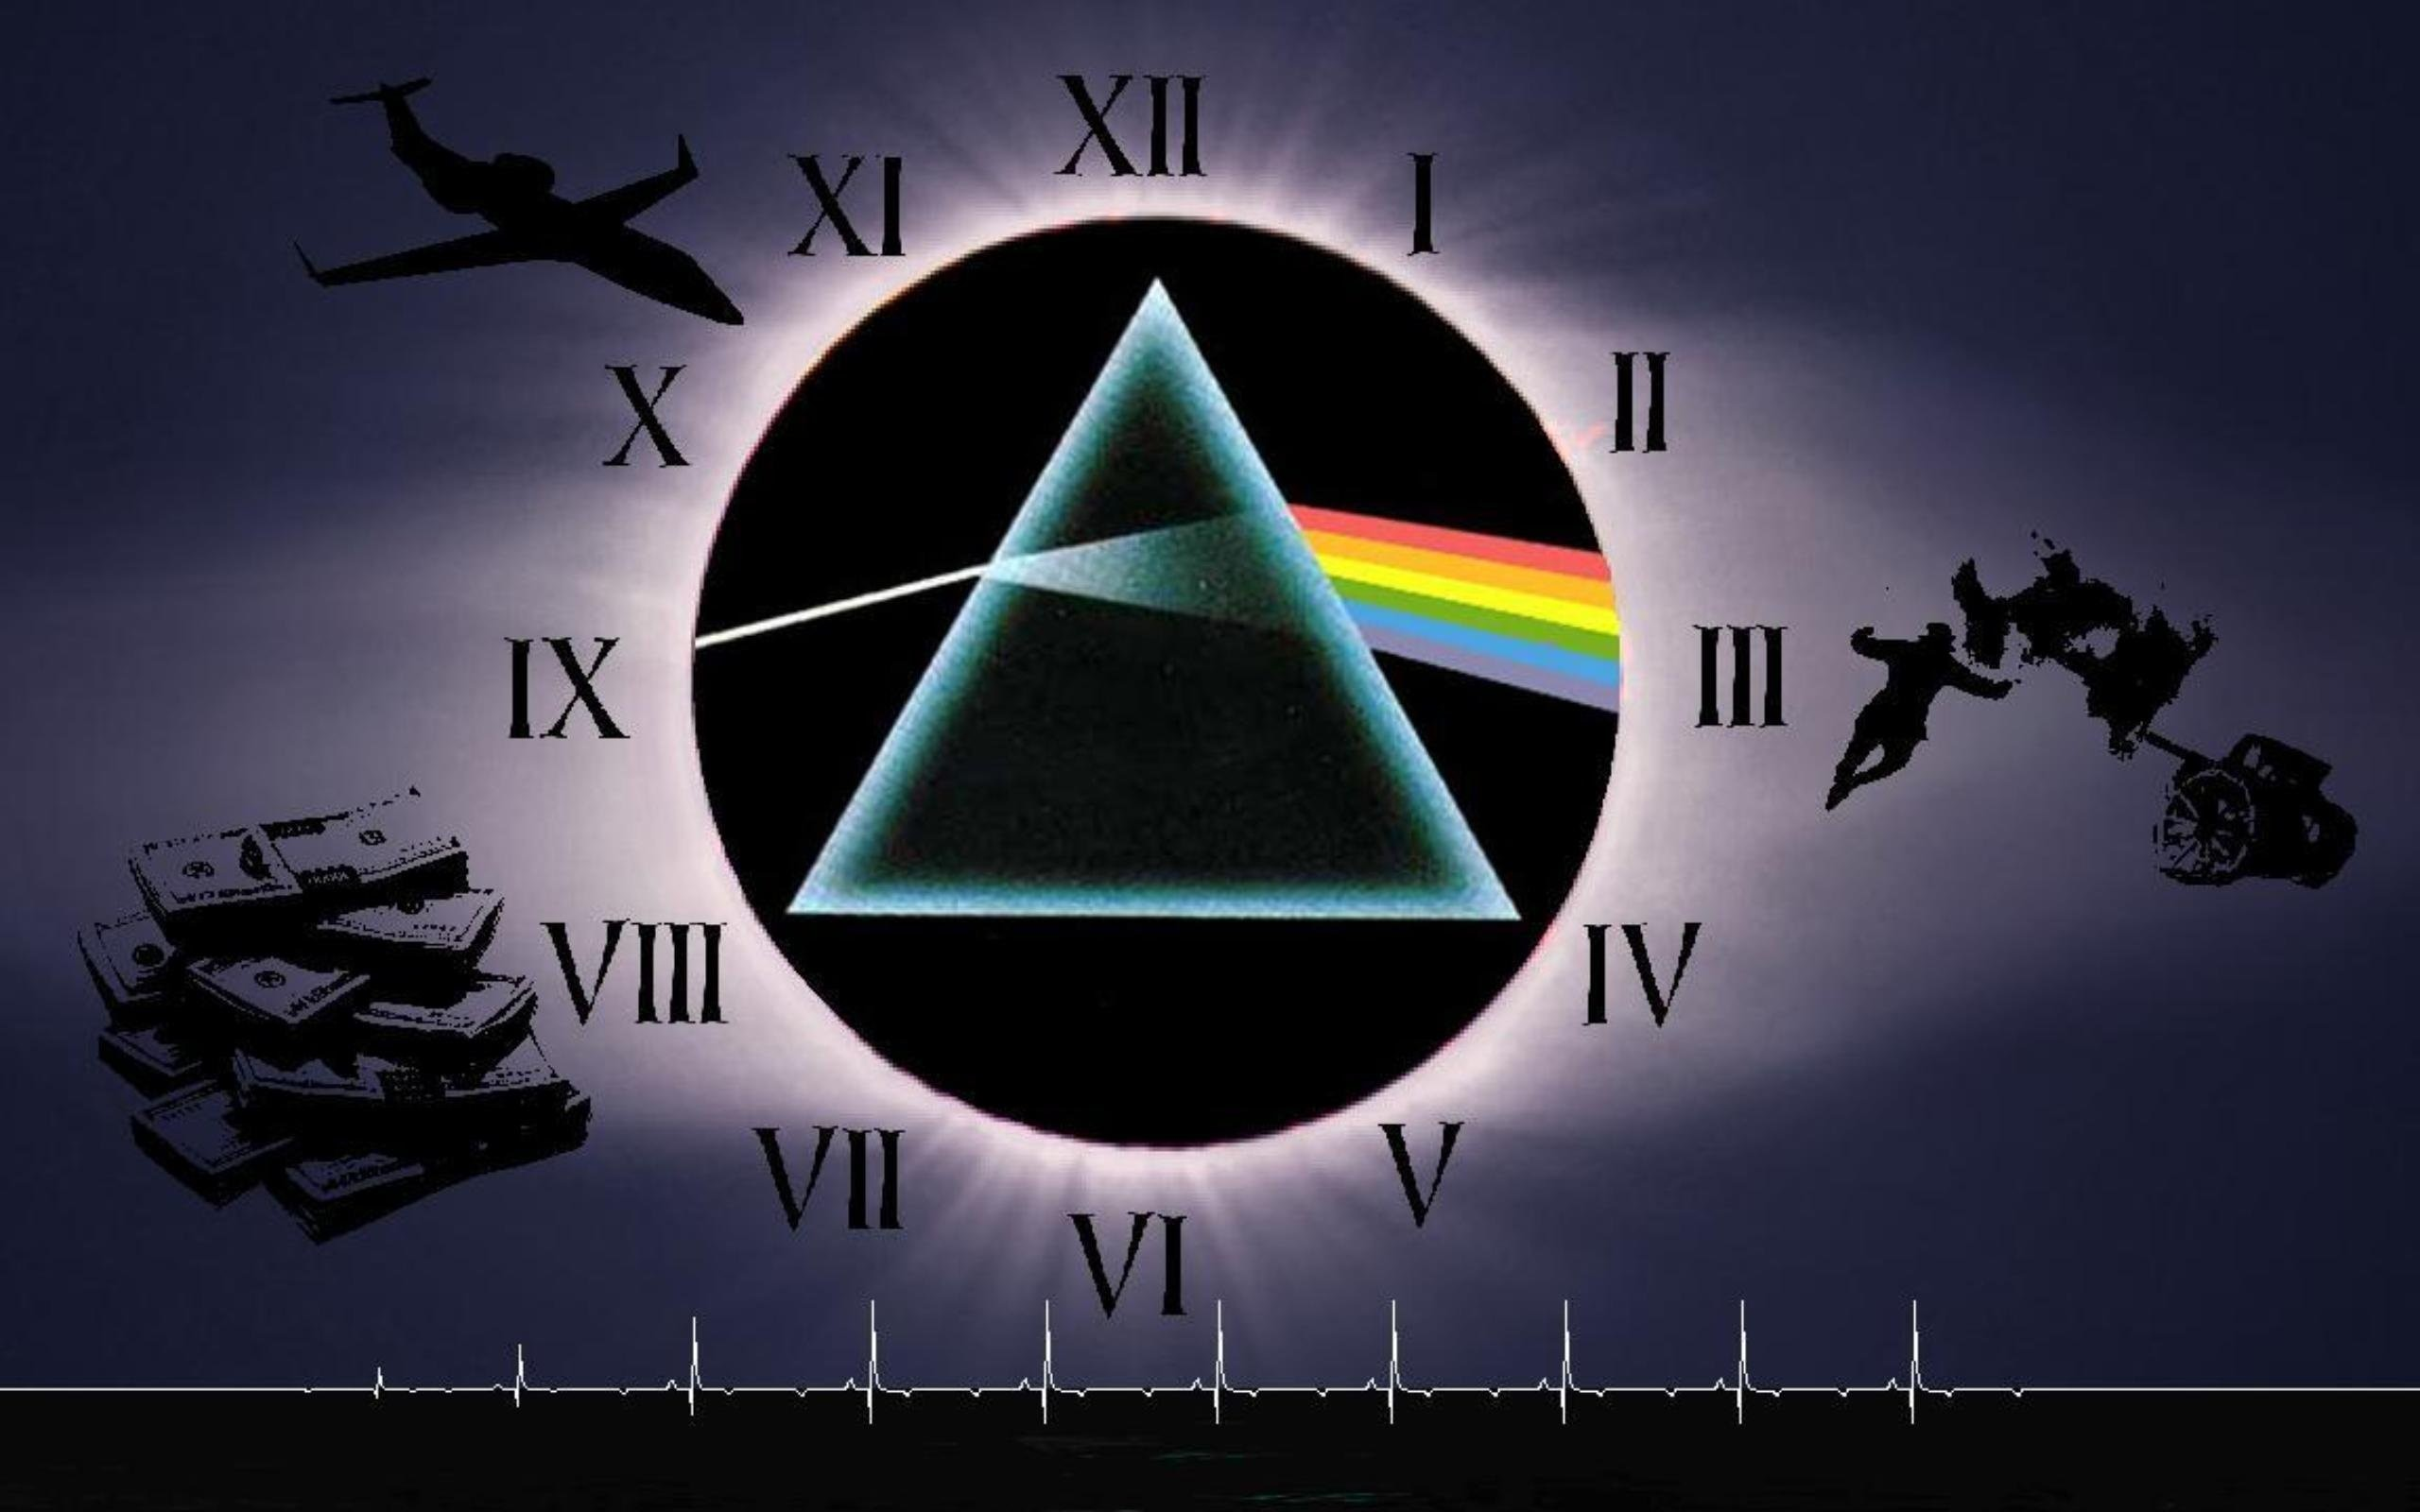 2560x1600 Images Download Pink Floyd Wallpapers High Resolution.